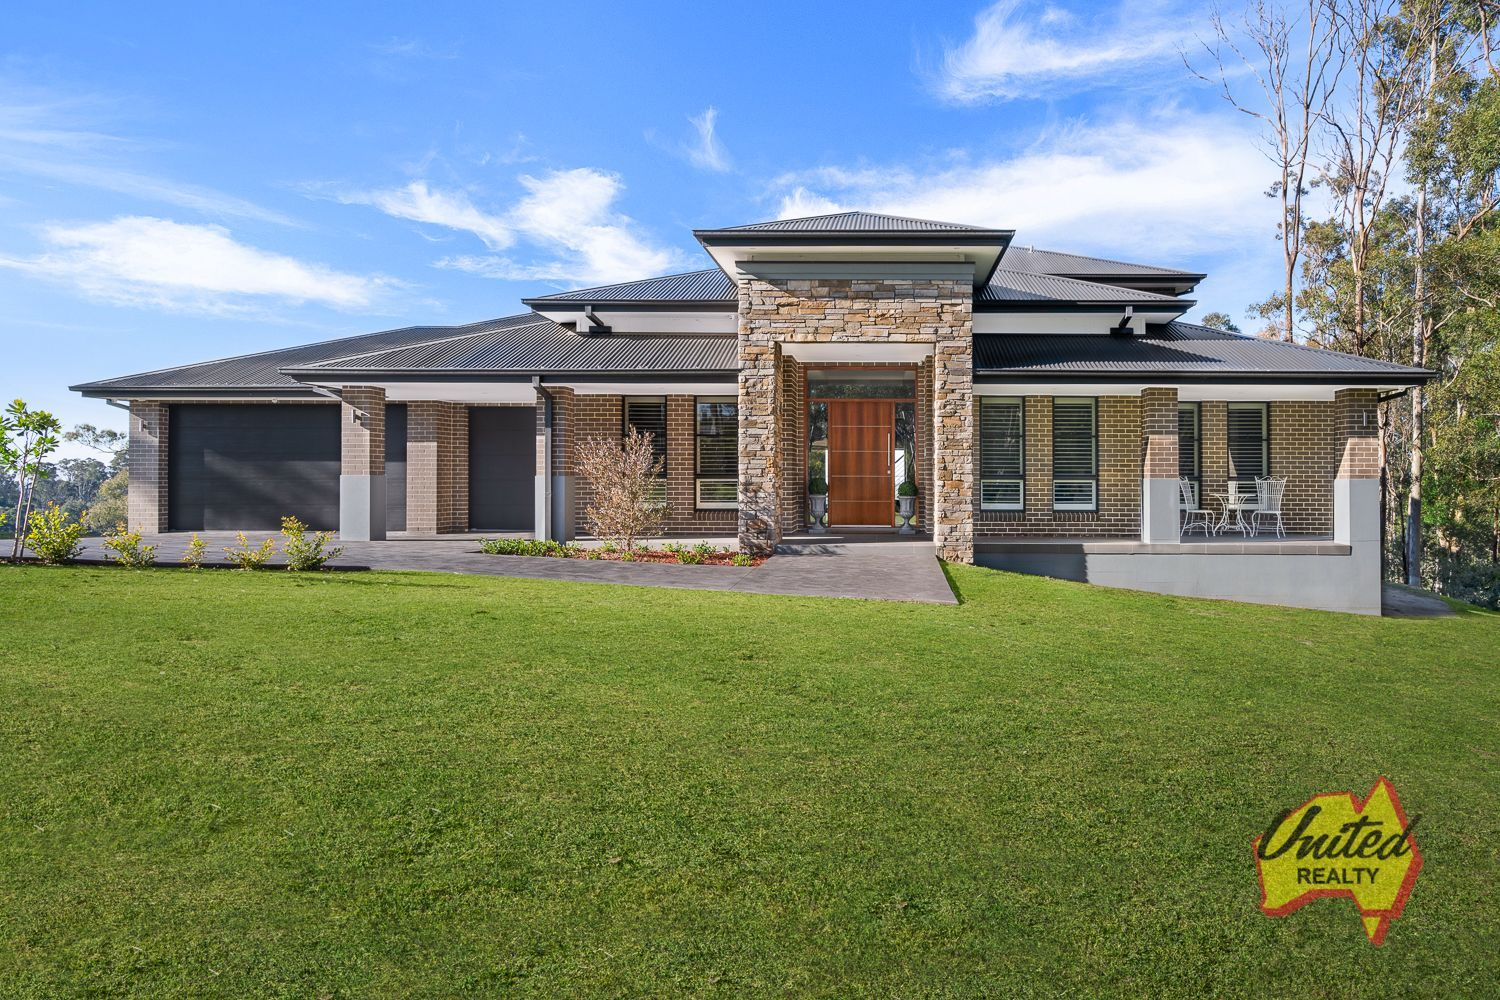 12/247 Garlicks Range Road, Orangeville NSW 2570, Image 2